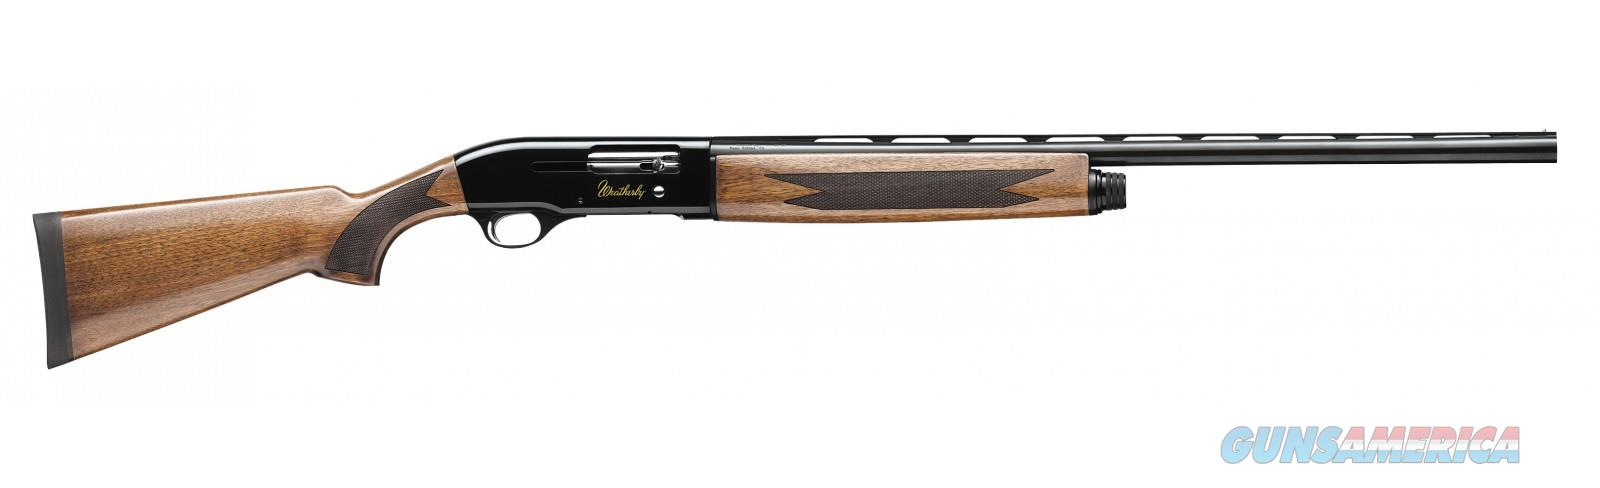 "Weatherby SA-08 Semi-Auto Deluxe Walnut Stock 12 Gauge 28"" Barrel  Guns > Shotguns > Weatherby Shotguns > Hunting > Autoloader"